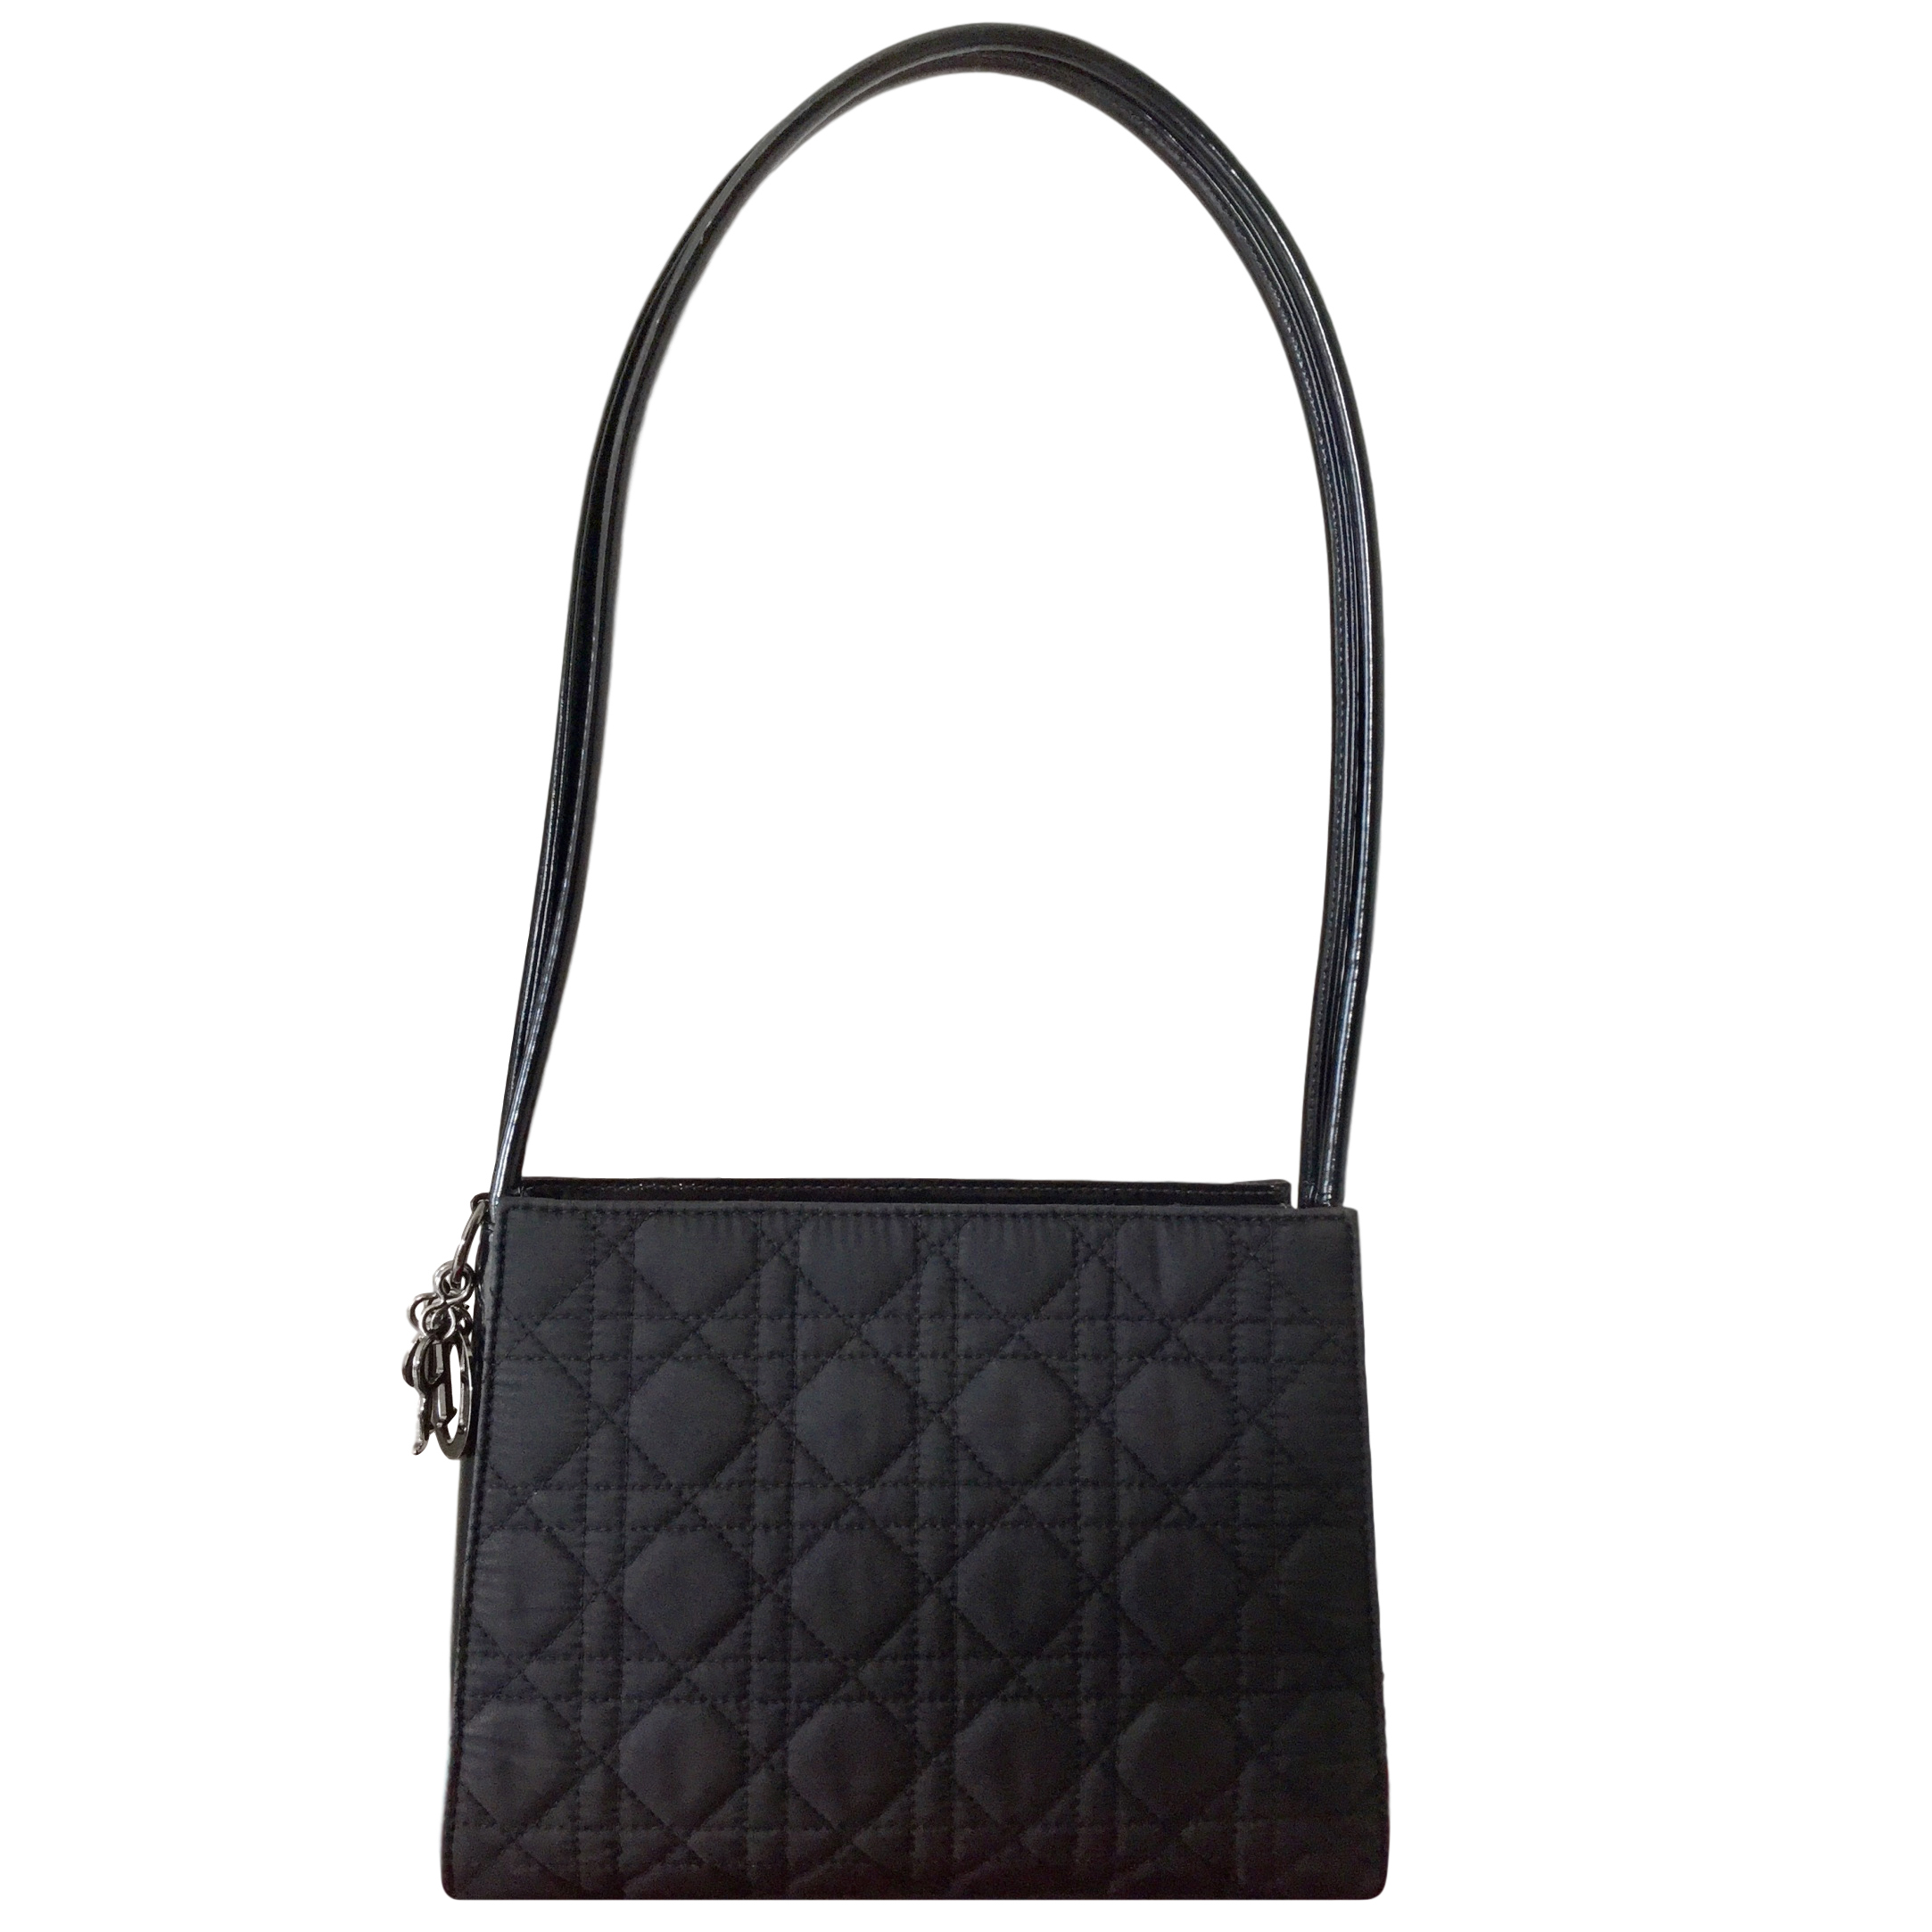 Christian Dior Black Cannage Leather Tote